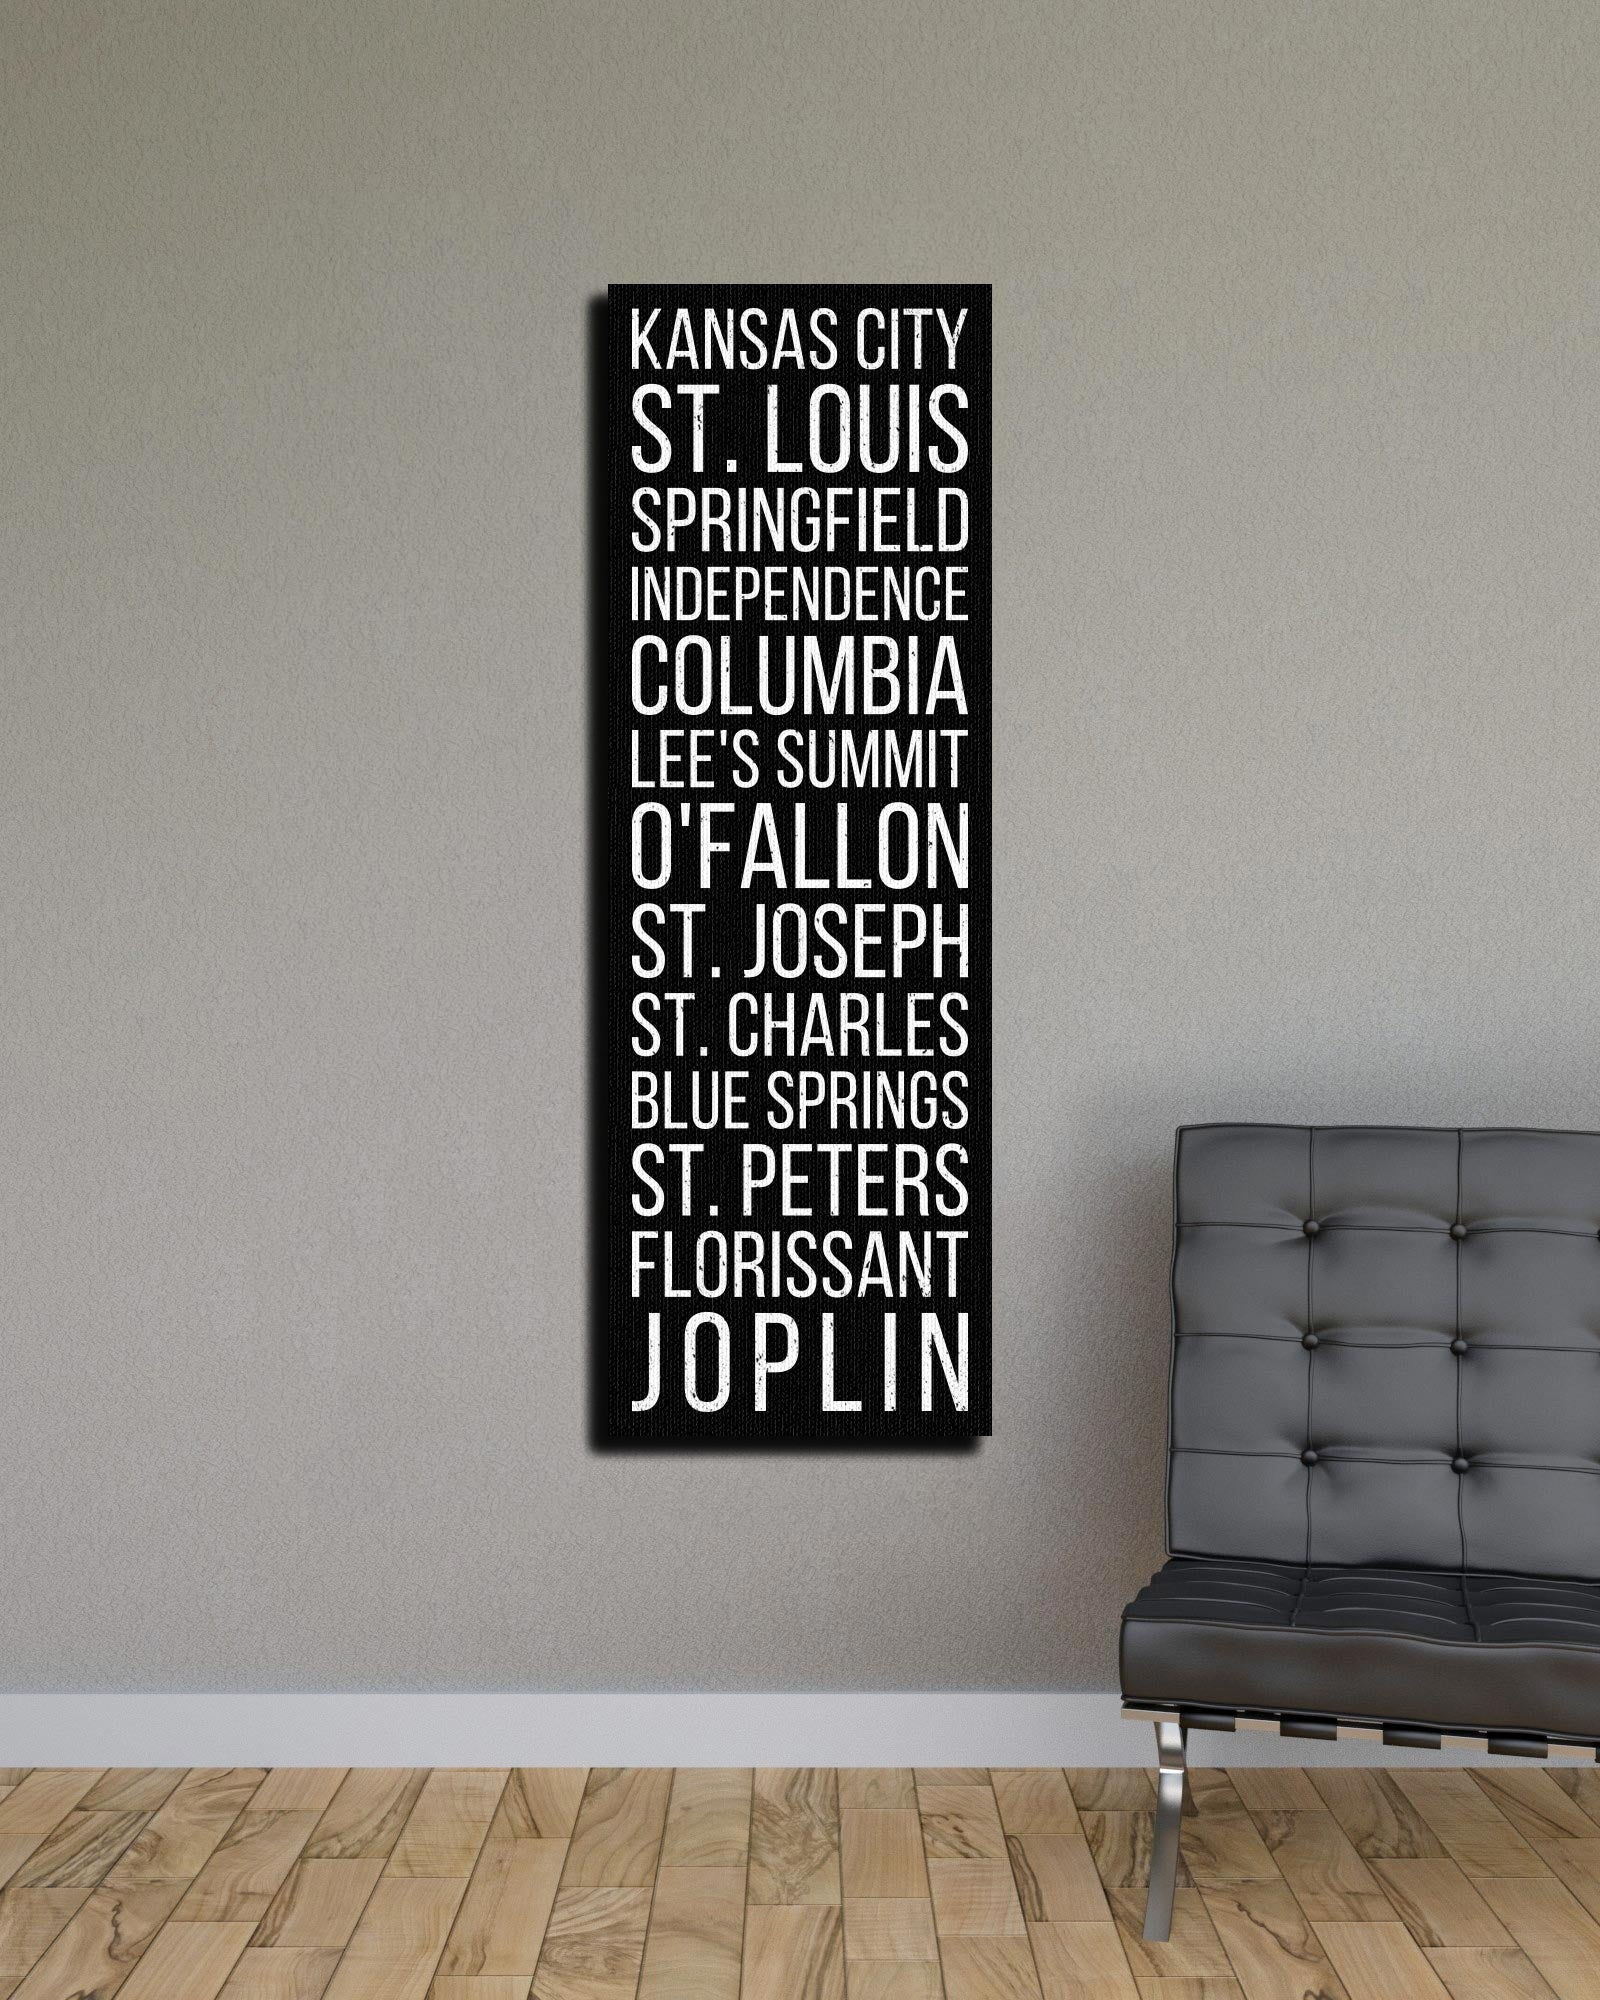 Missouri Kansas City St. Louis Springfield Bus Scroll Subway Canvas Print